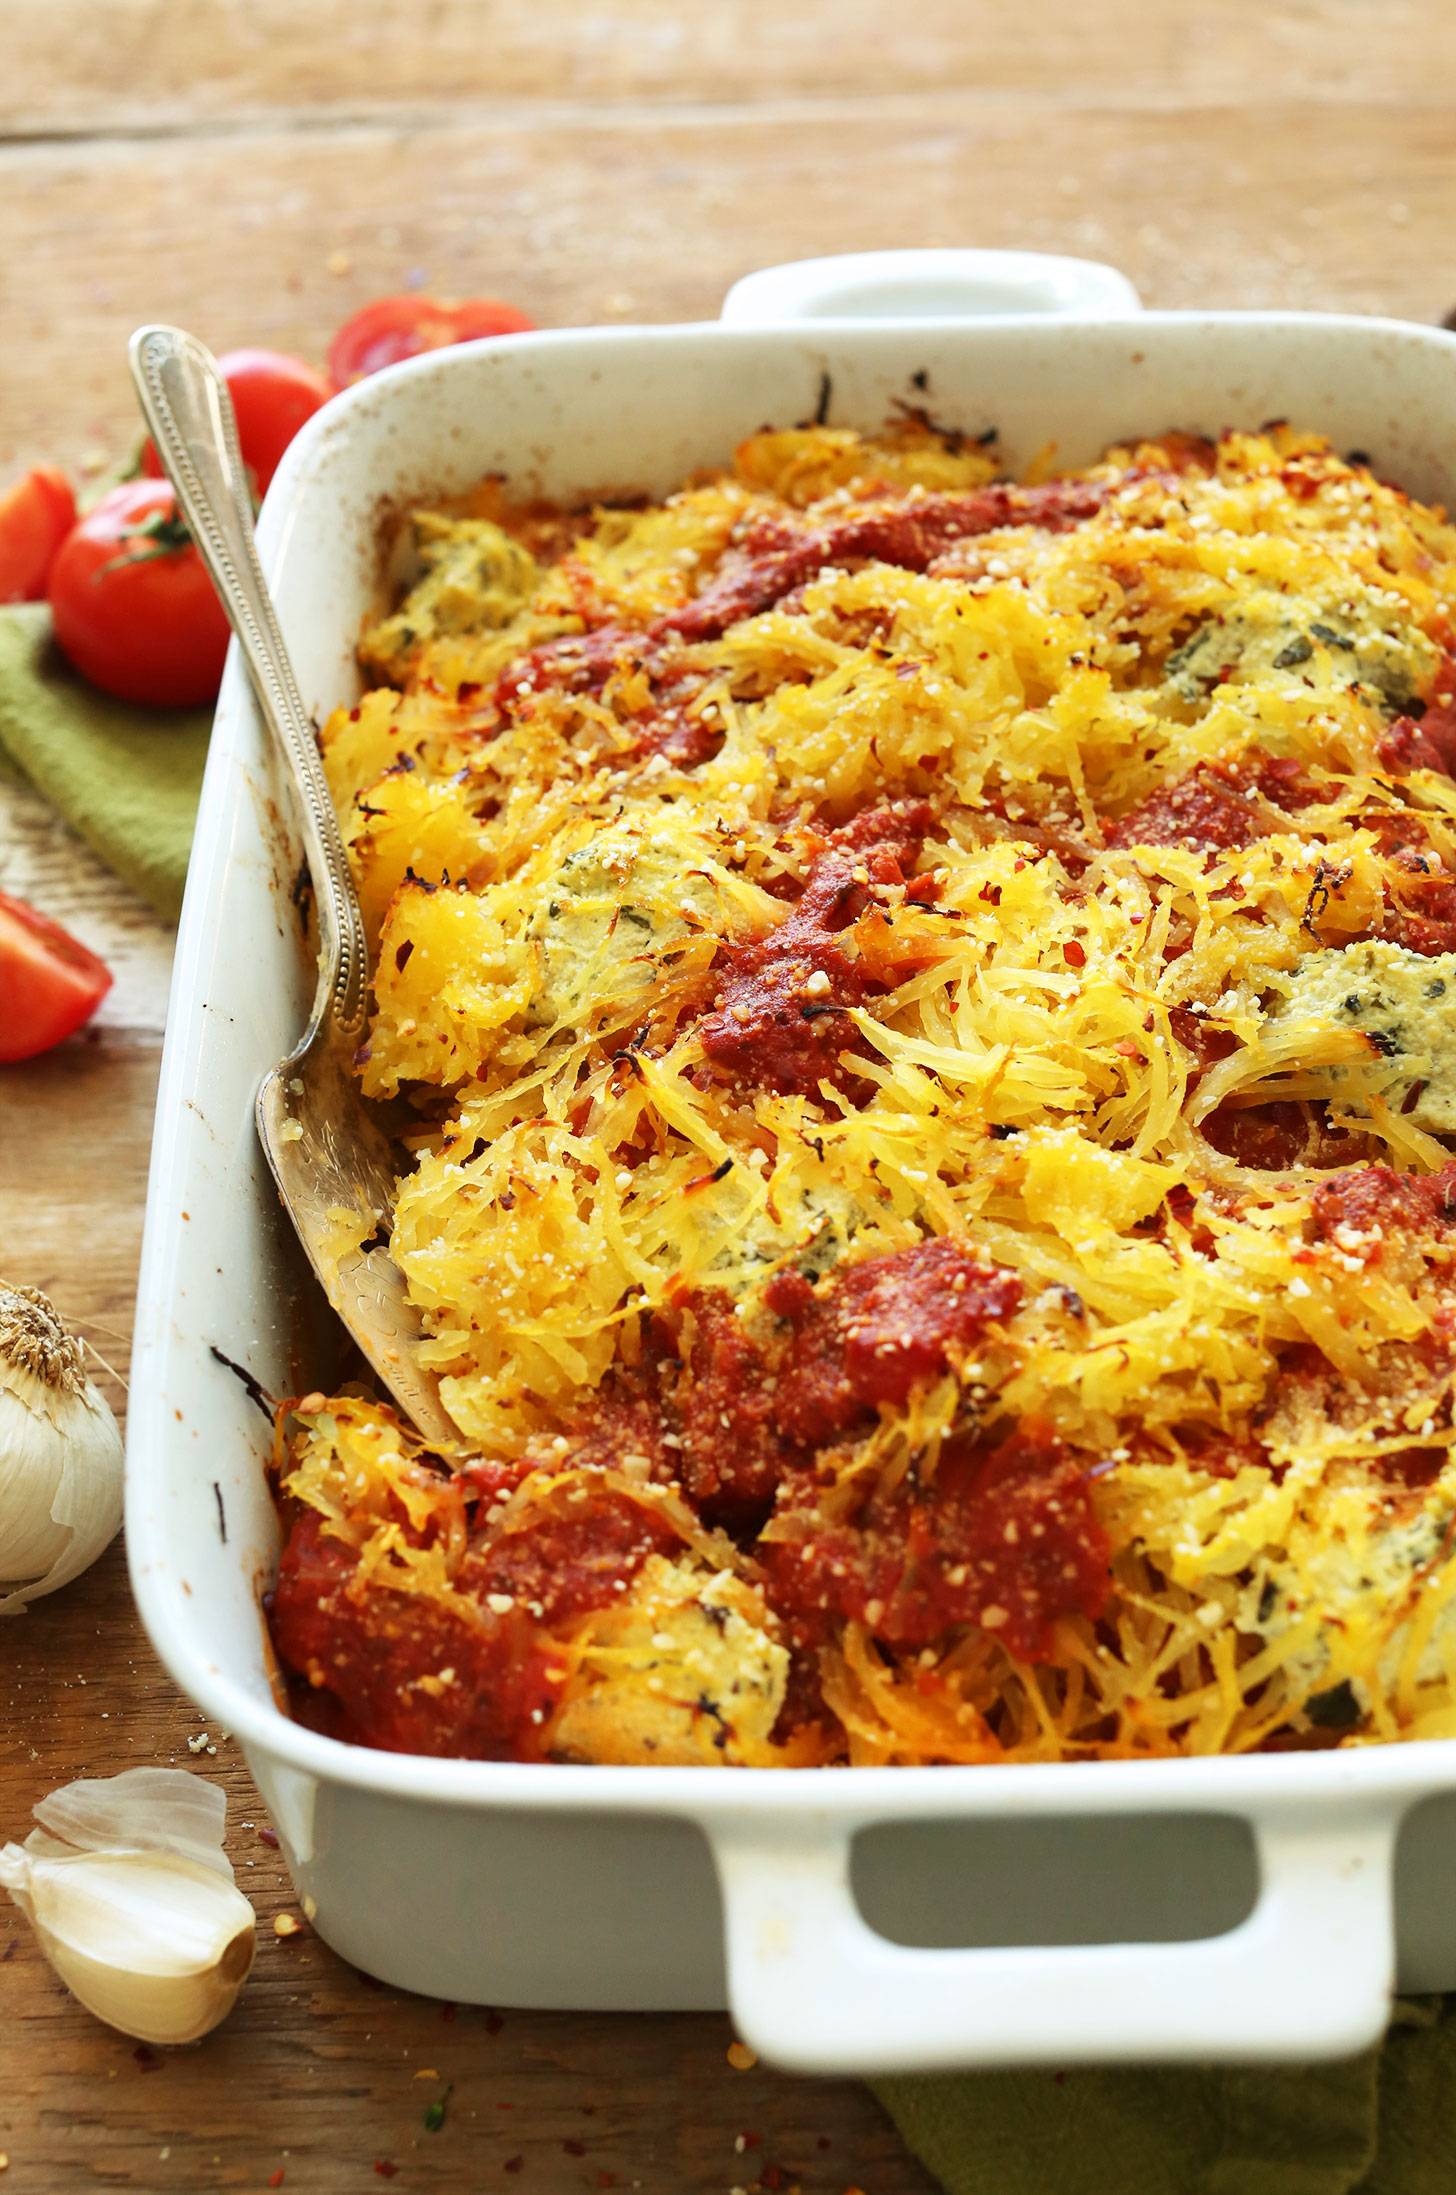 Ceramic Baking Dish Filled With Our Gluten Free Vegan Spaghetti Squash Lasagna Bake Recipe